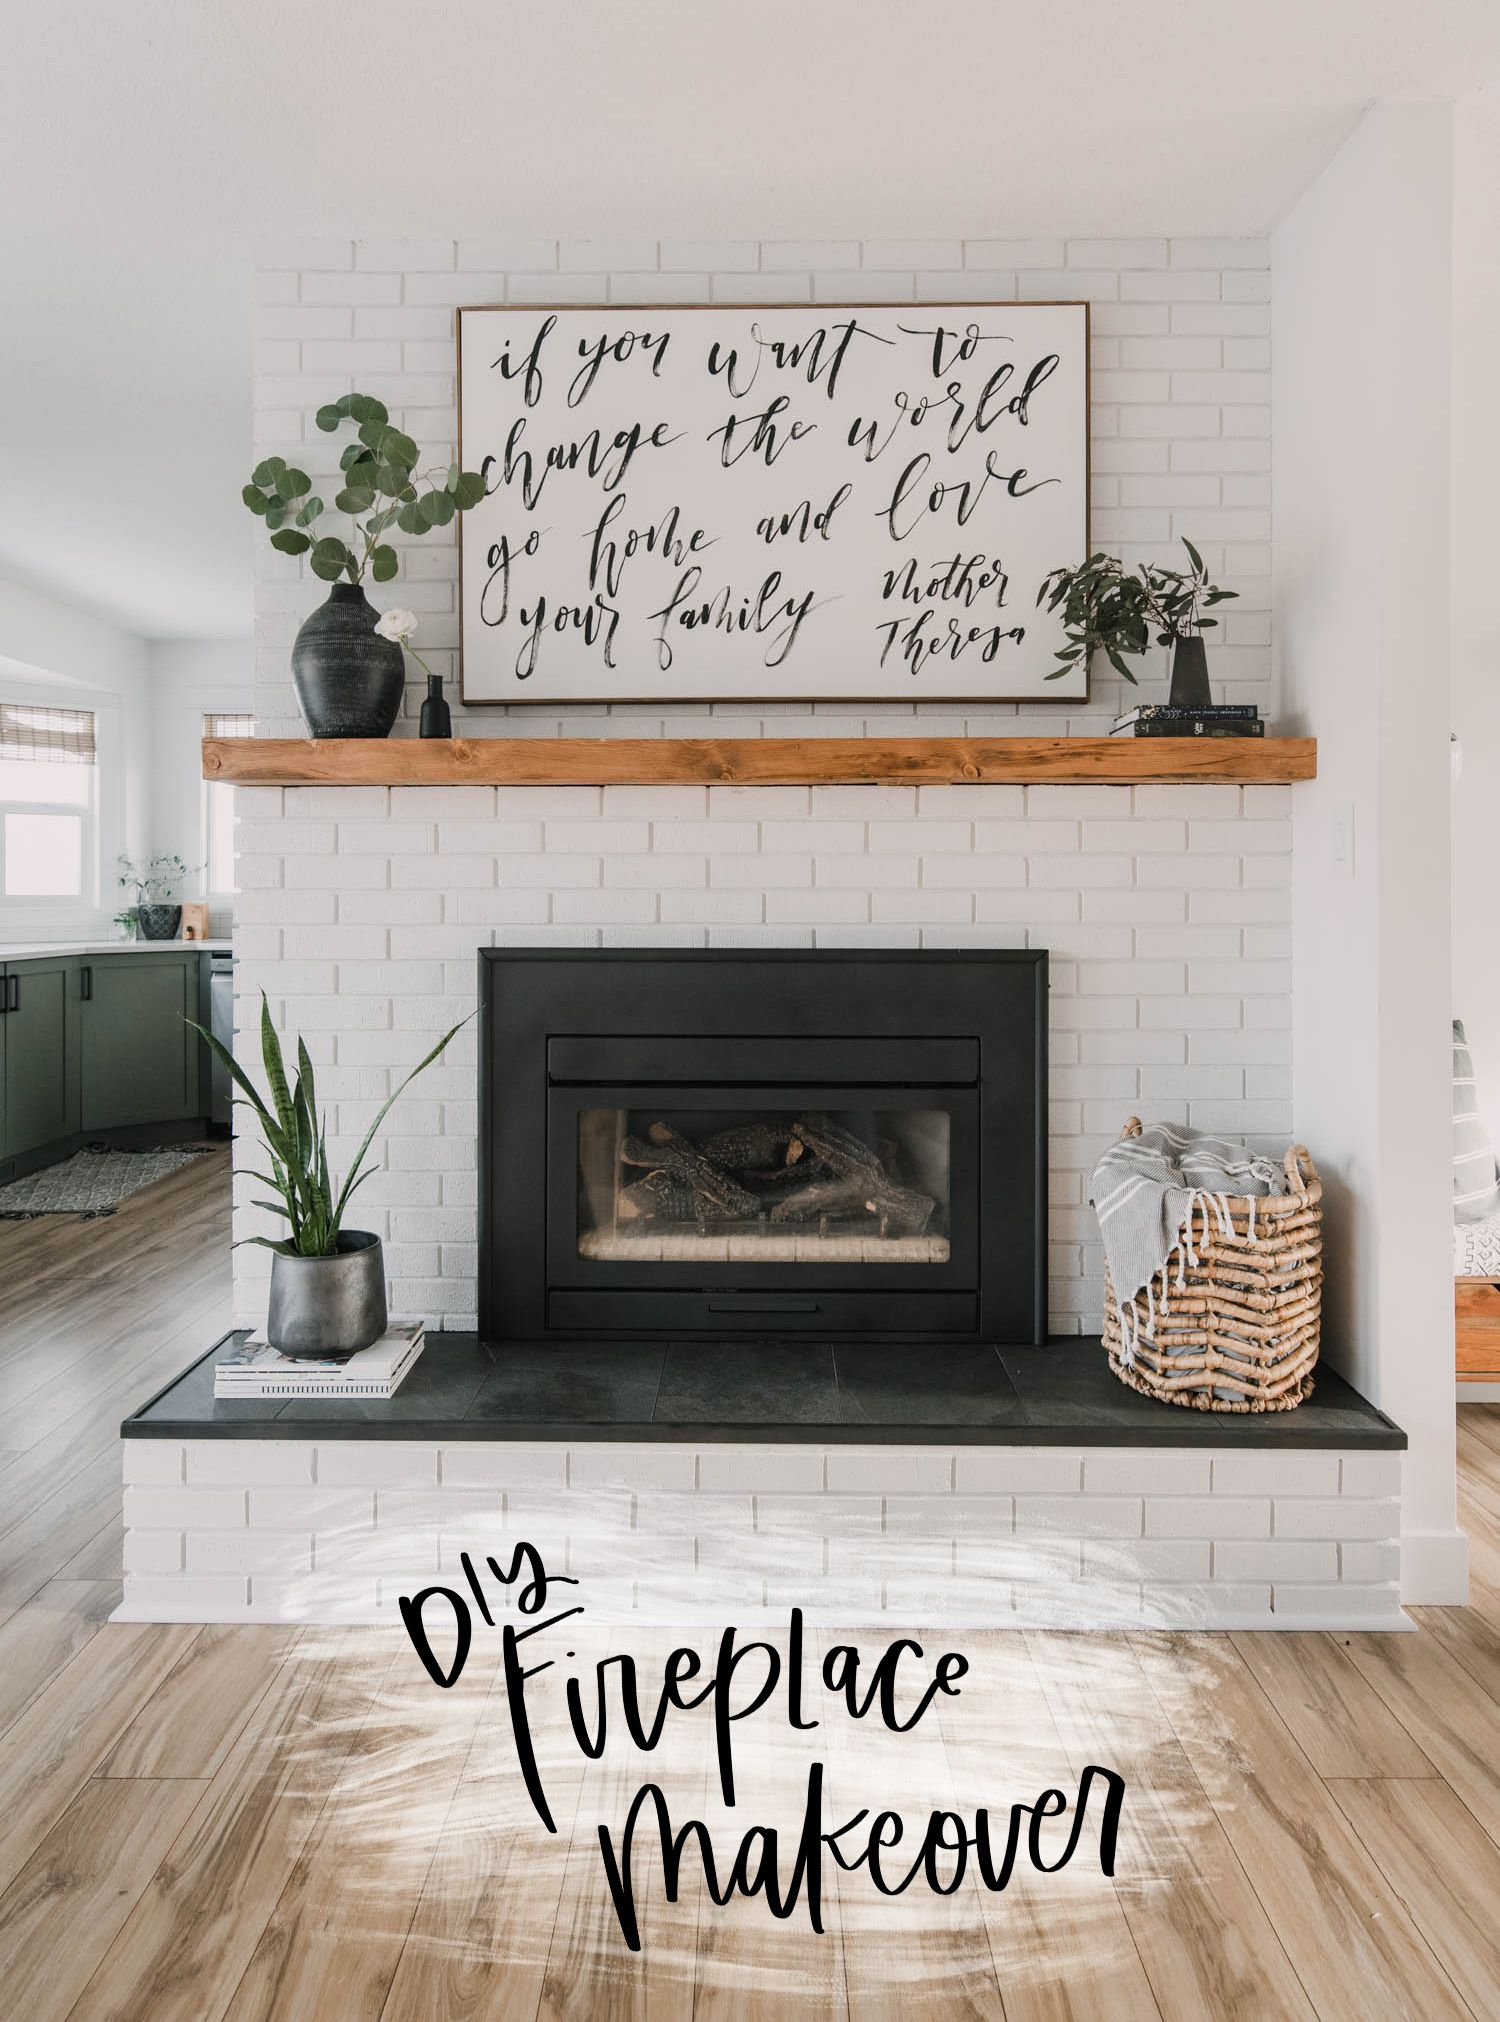 diy brick fireplace makeover in 2020 | brick fireplace makeover, diy fireplace, modern fireplace